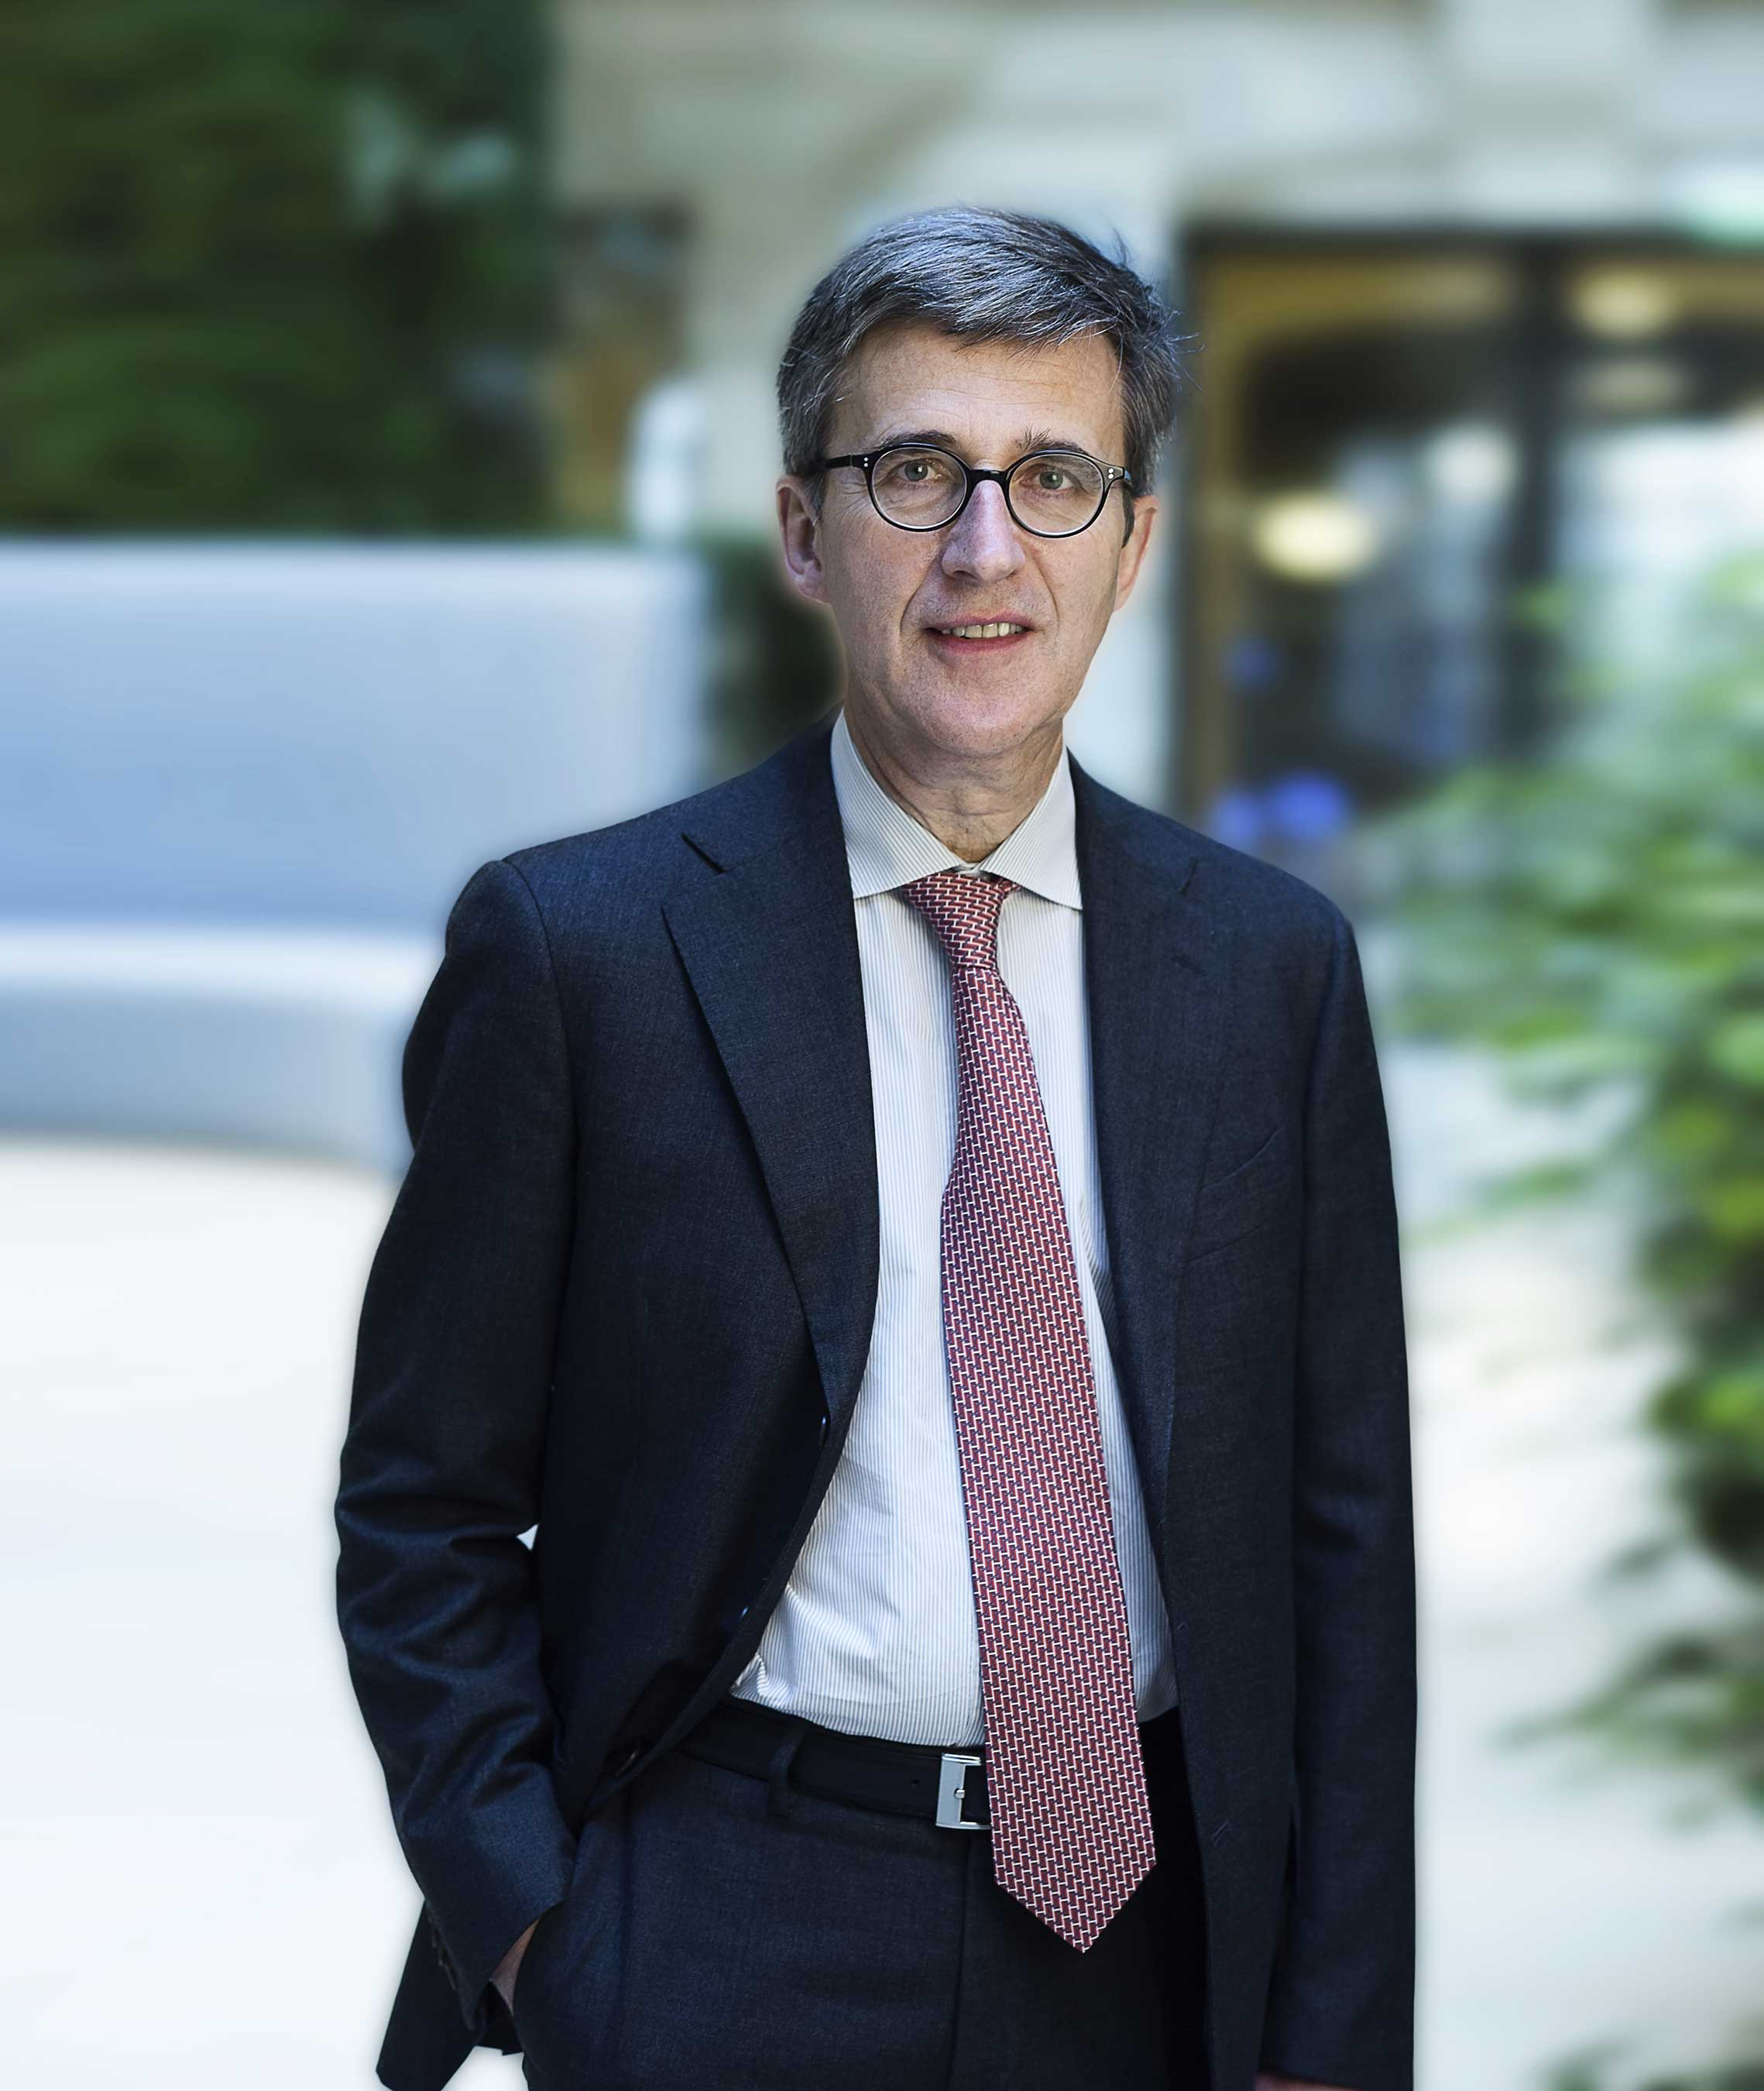 Jérôme Contamine, Executive Vice President, Chief Financial Officer